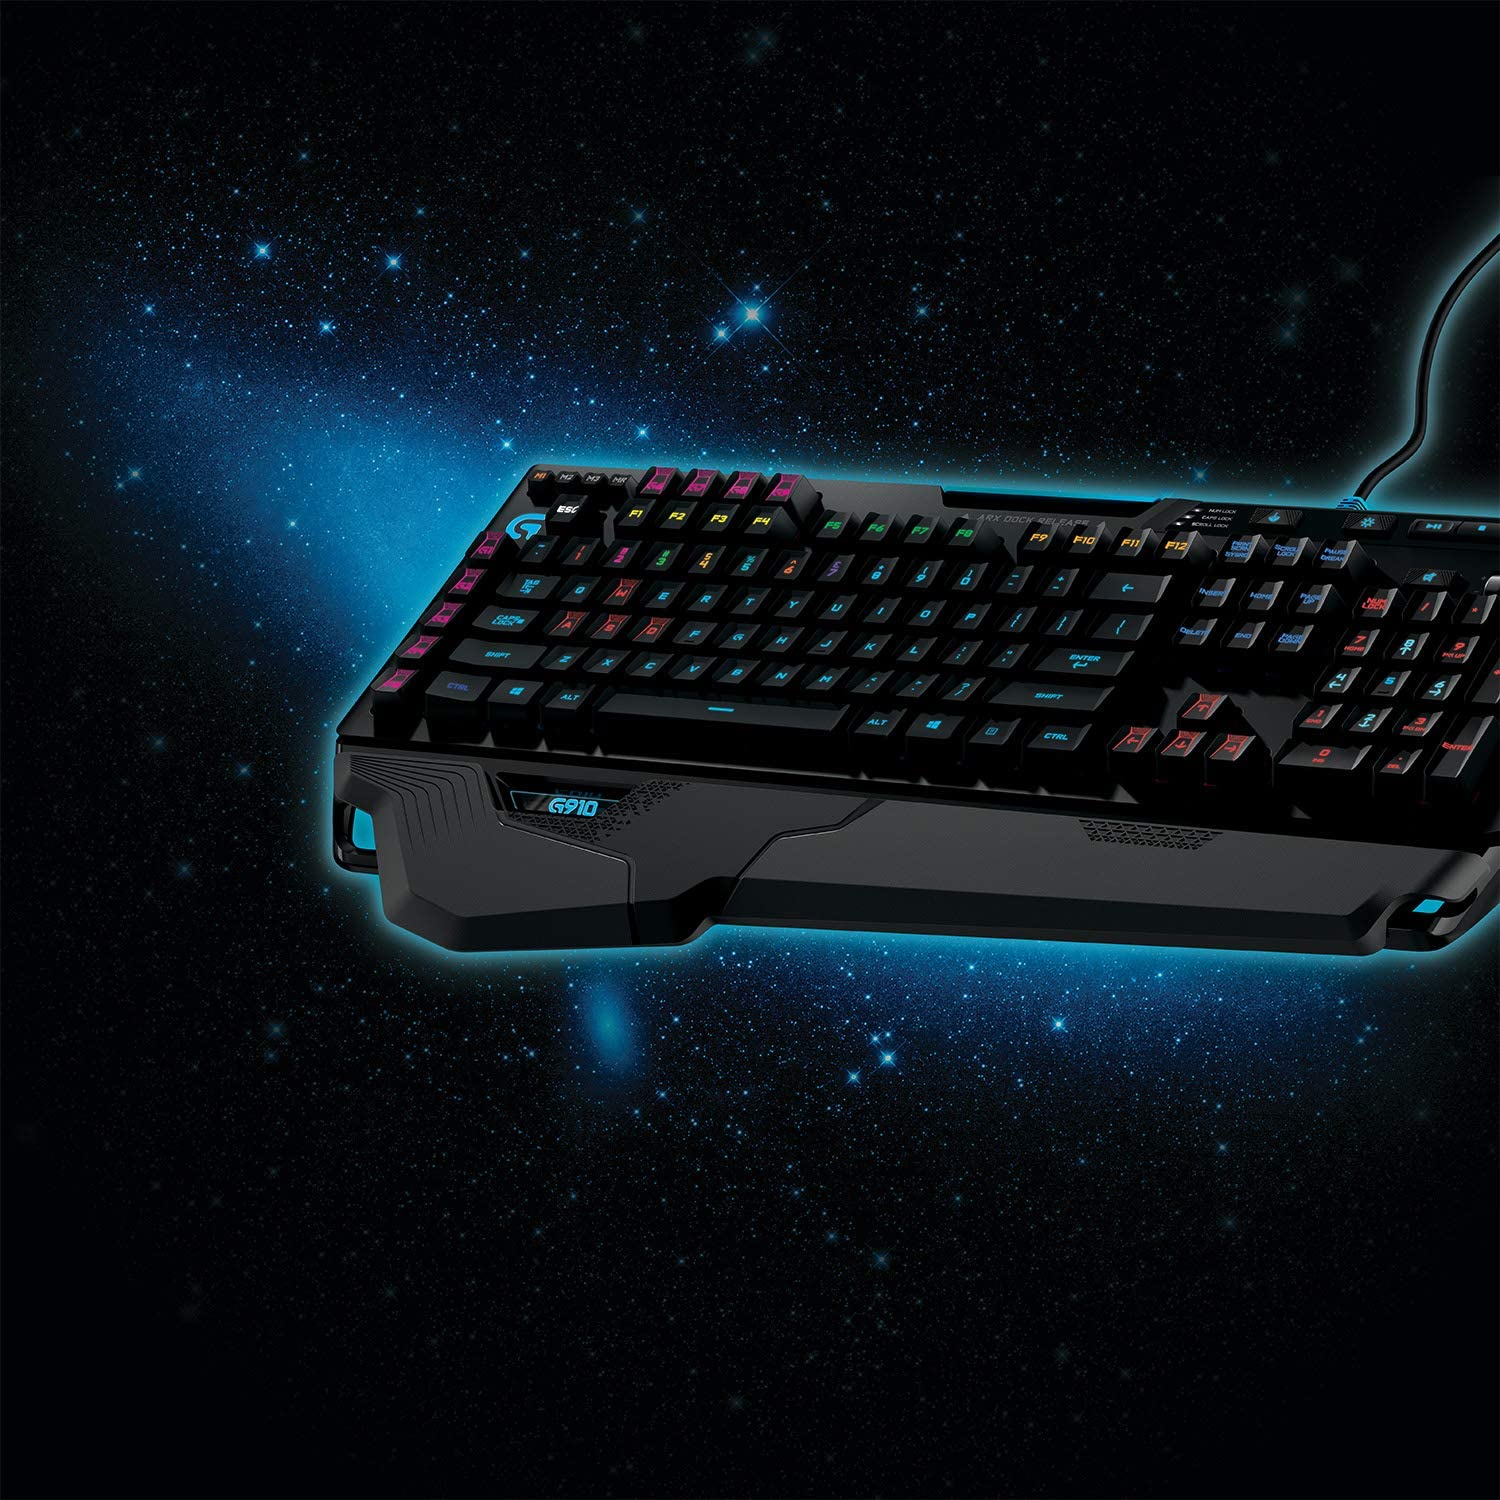 Best Keyboard for WoW Reviews and Buying Guide for 2020